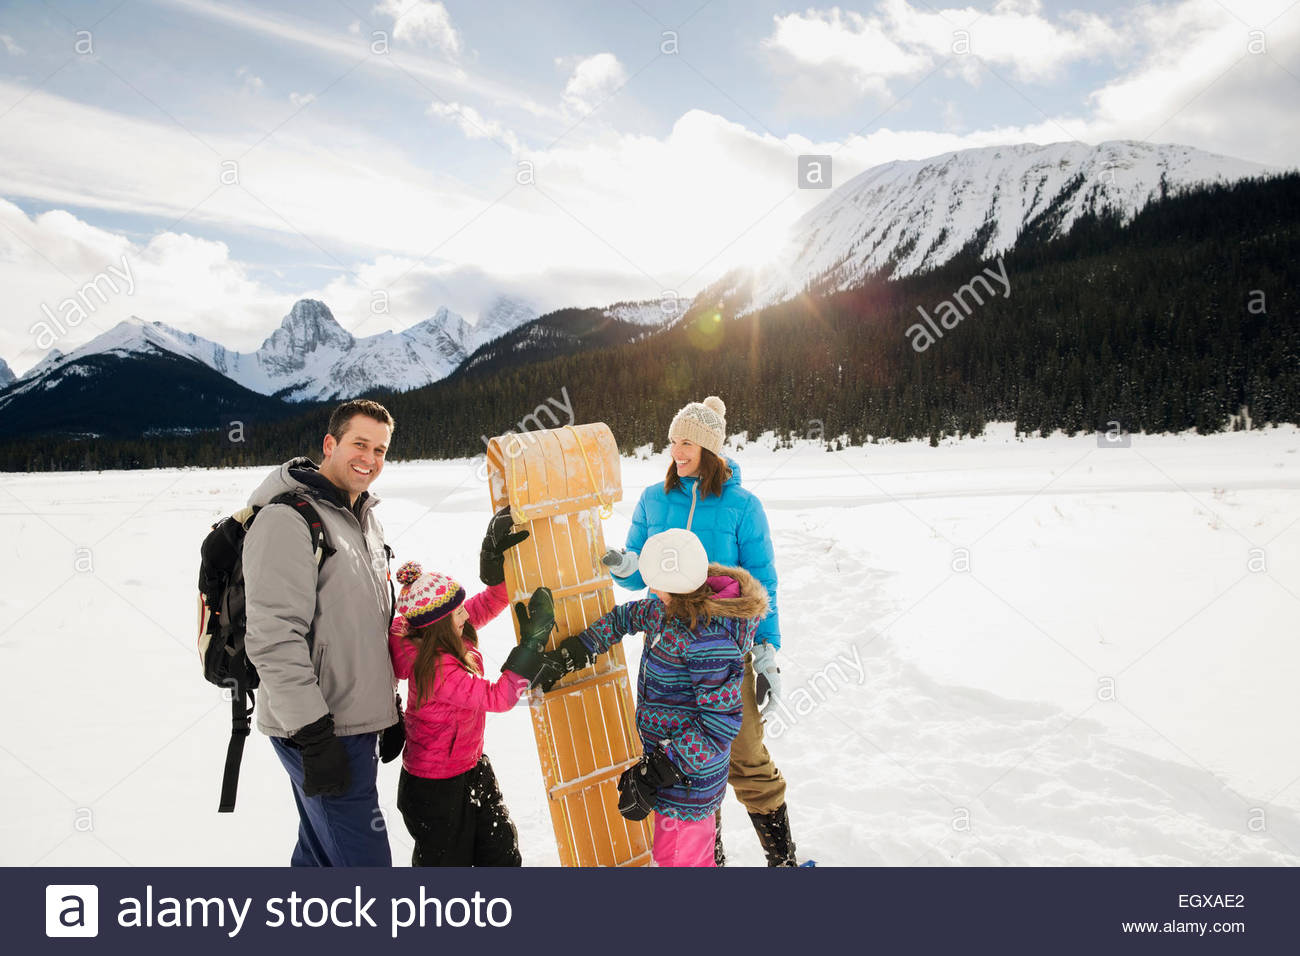 Family with sled in snowy field below mountains - Stock Image